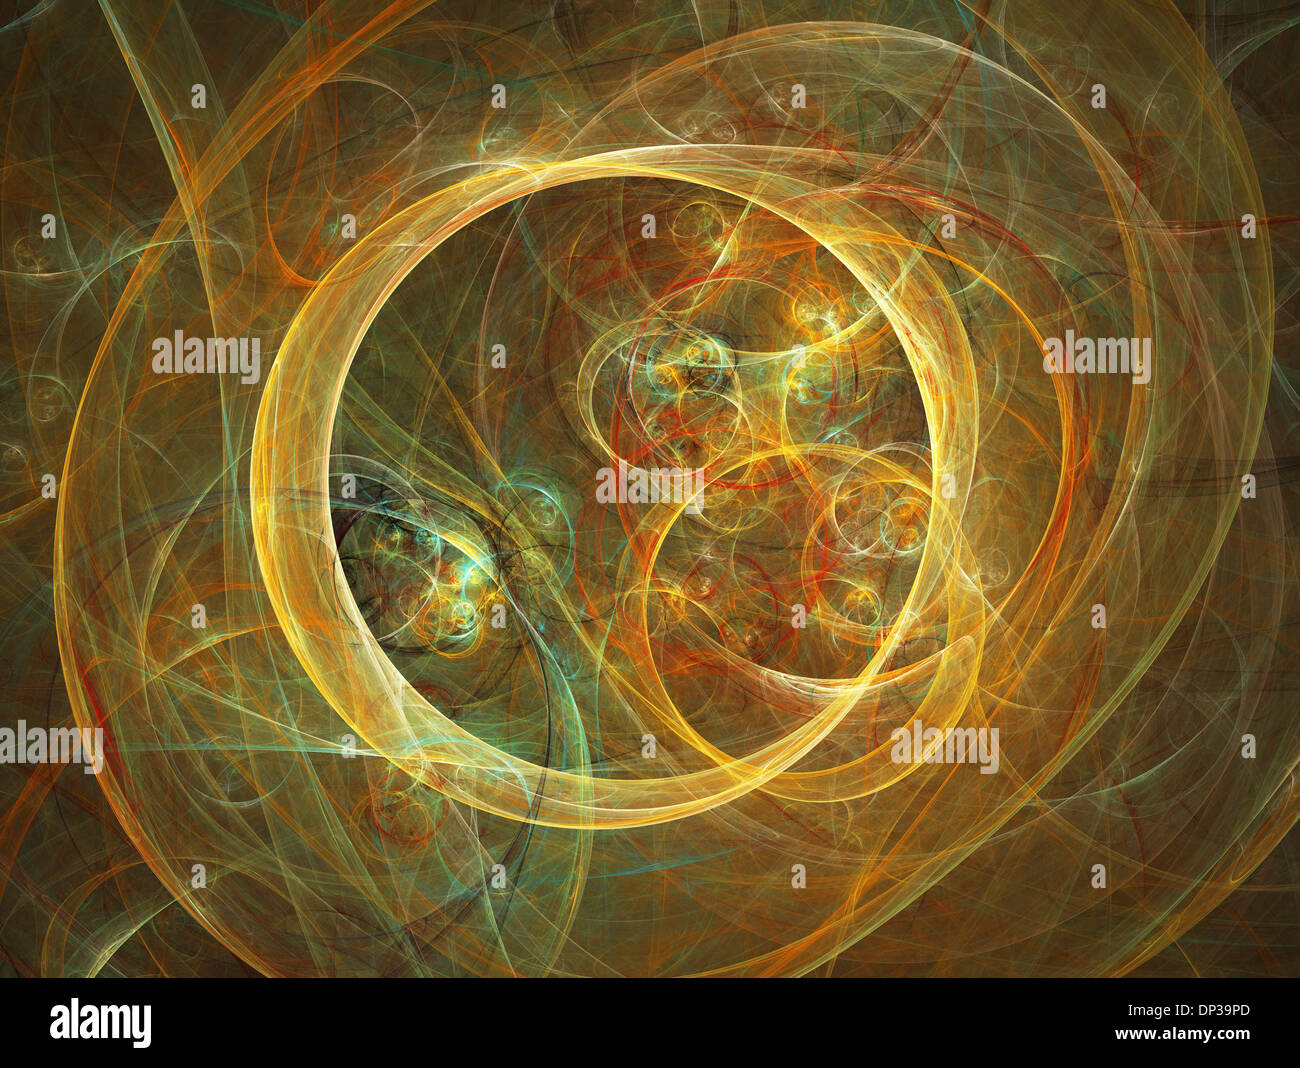 Superstrings, conceptual artwork - Stock Image